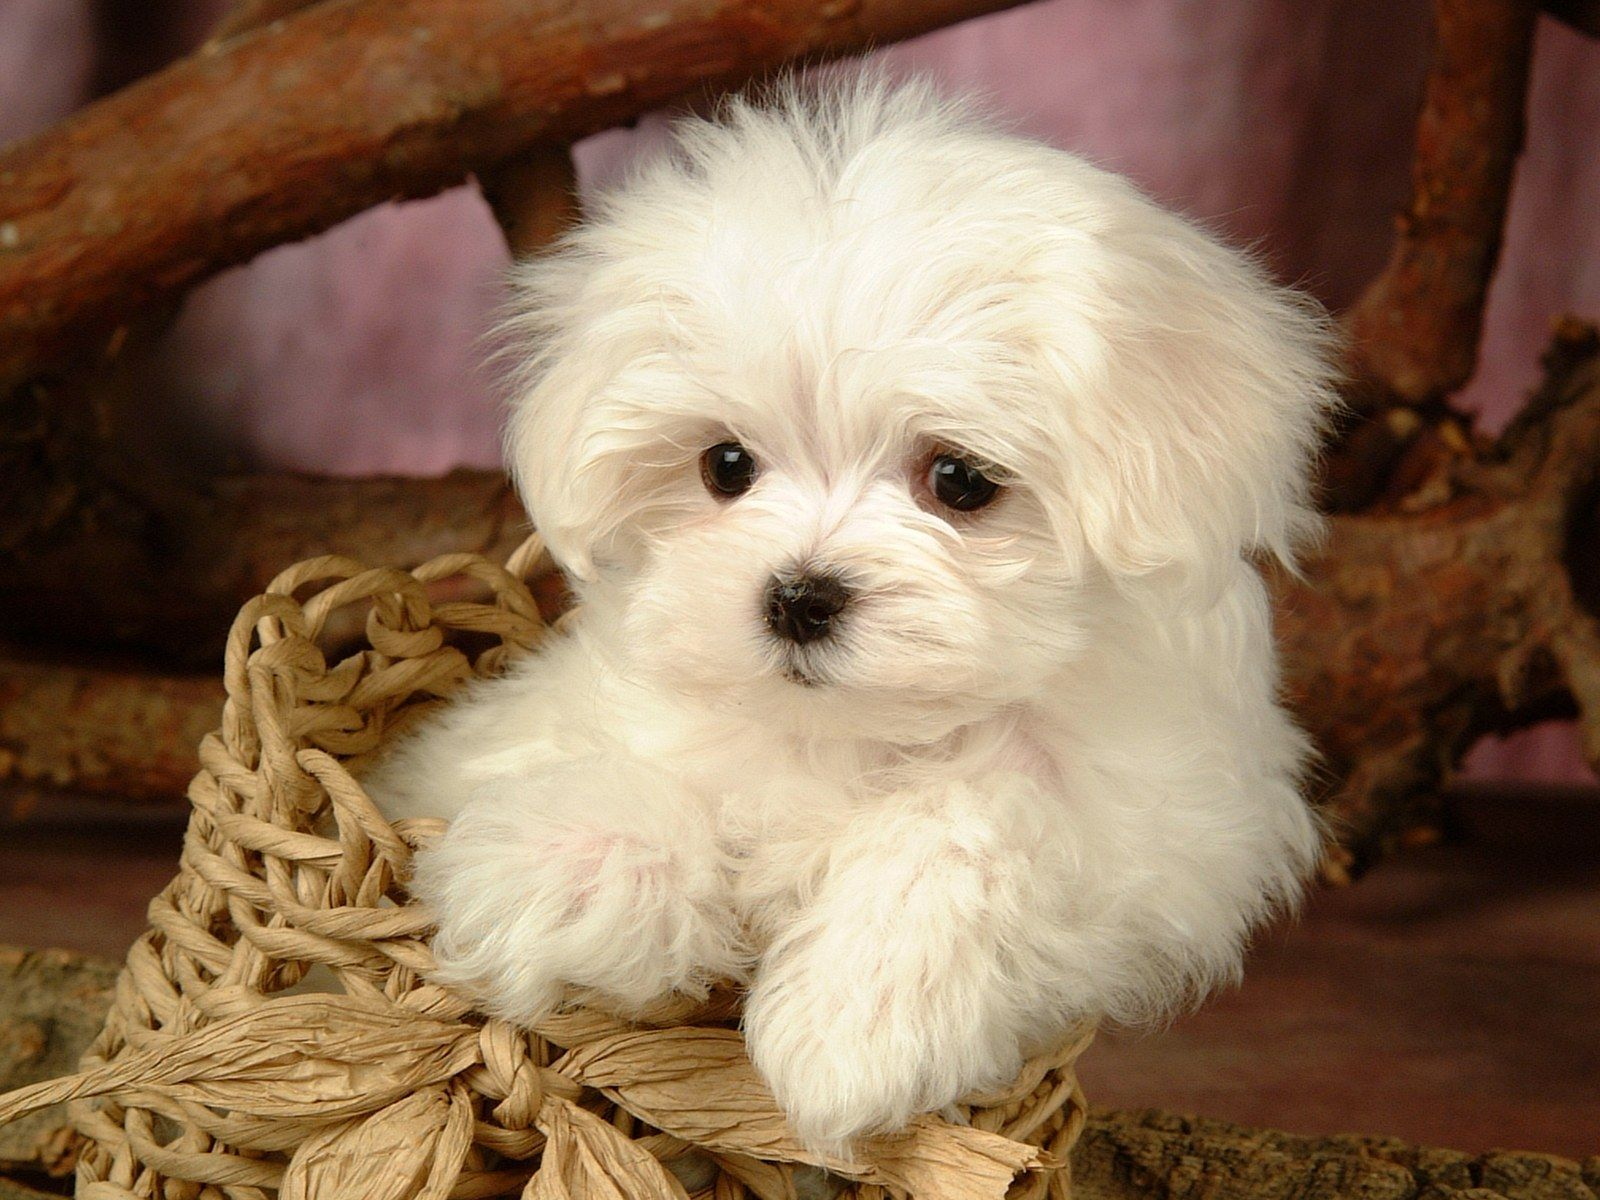 cute puppies dogs pics description: lovely puppy dog wallpaper 1600